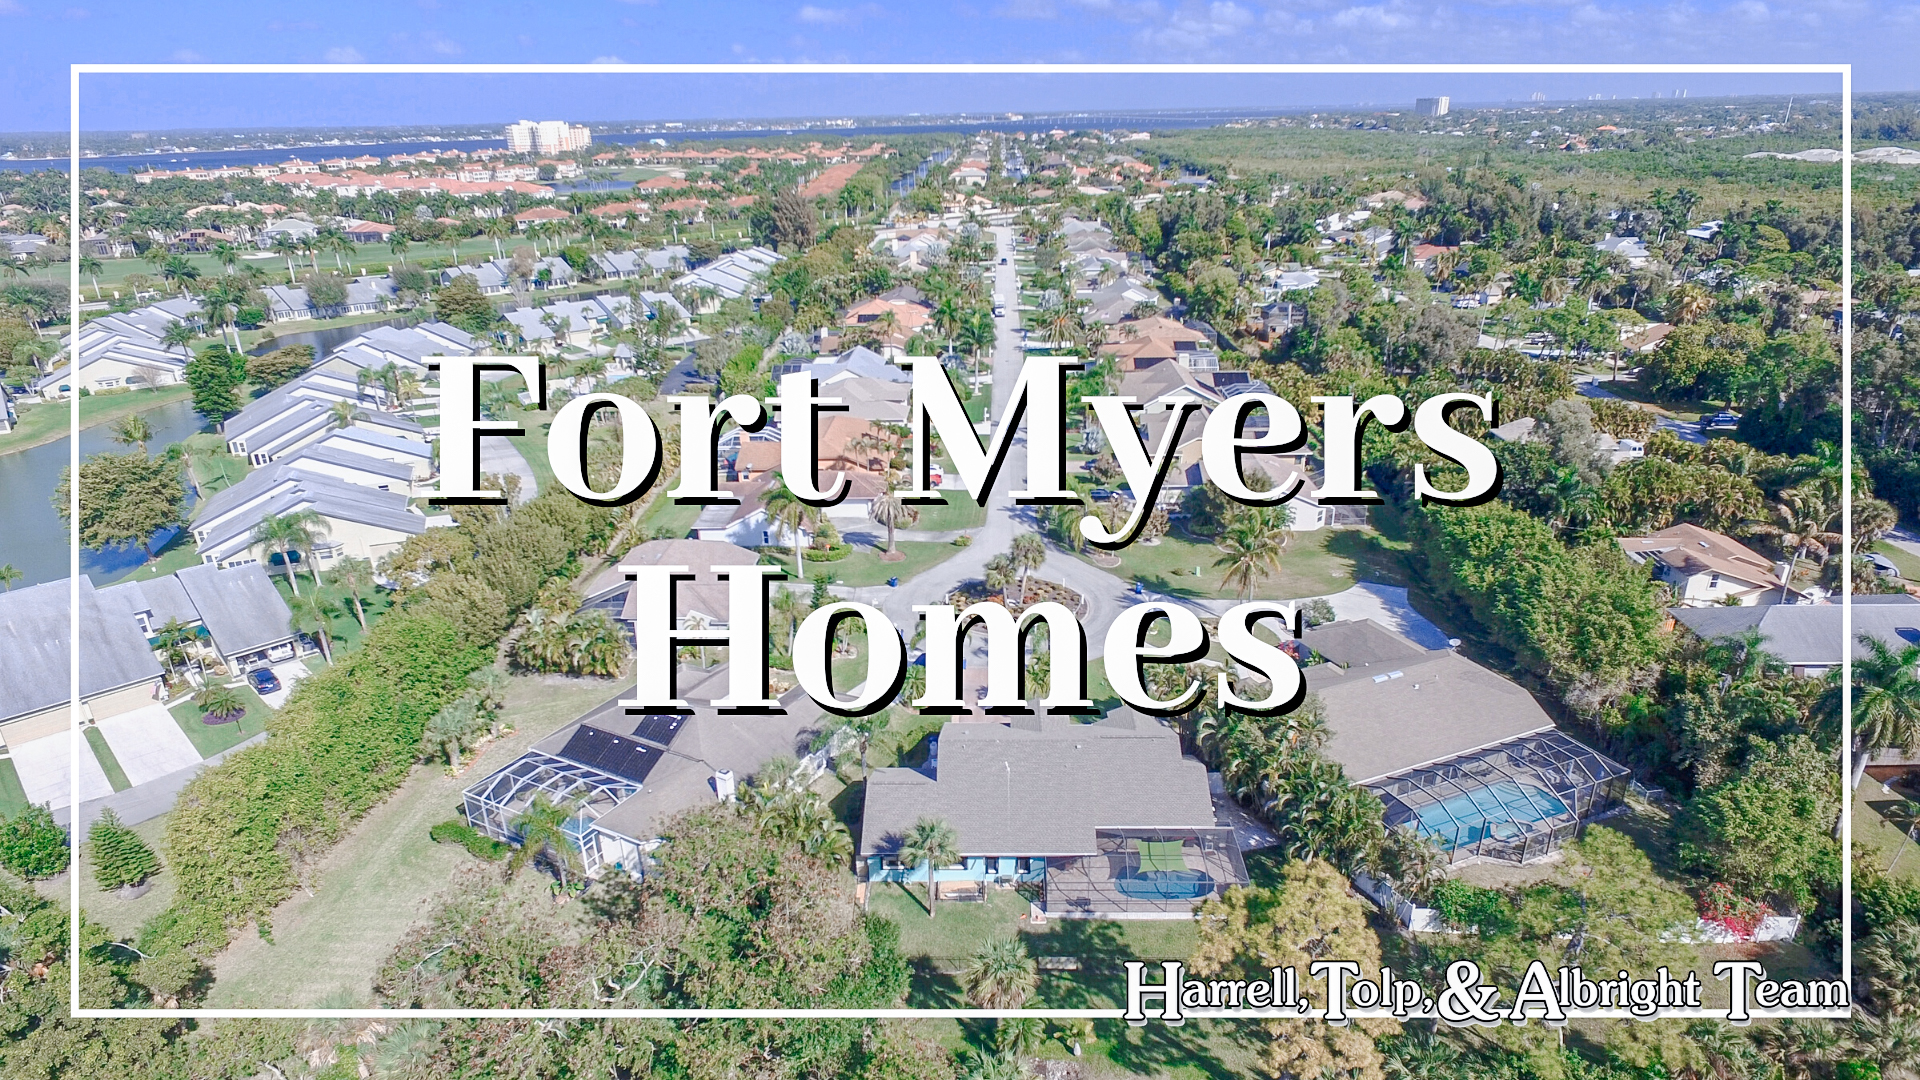 Fort Myers Homes